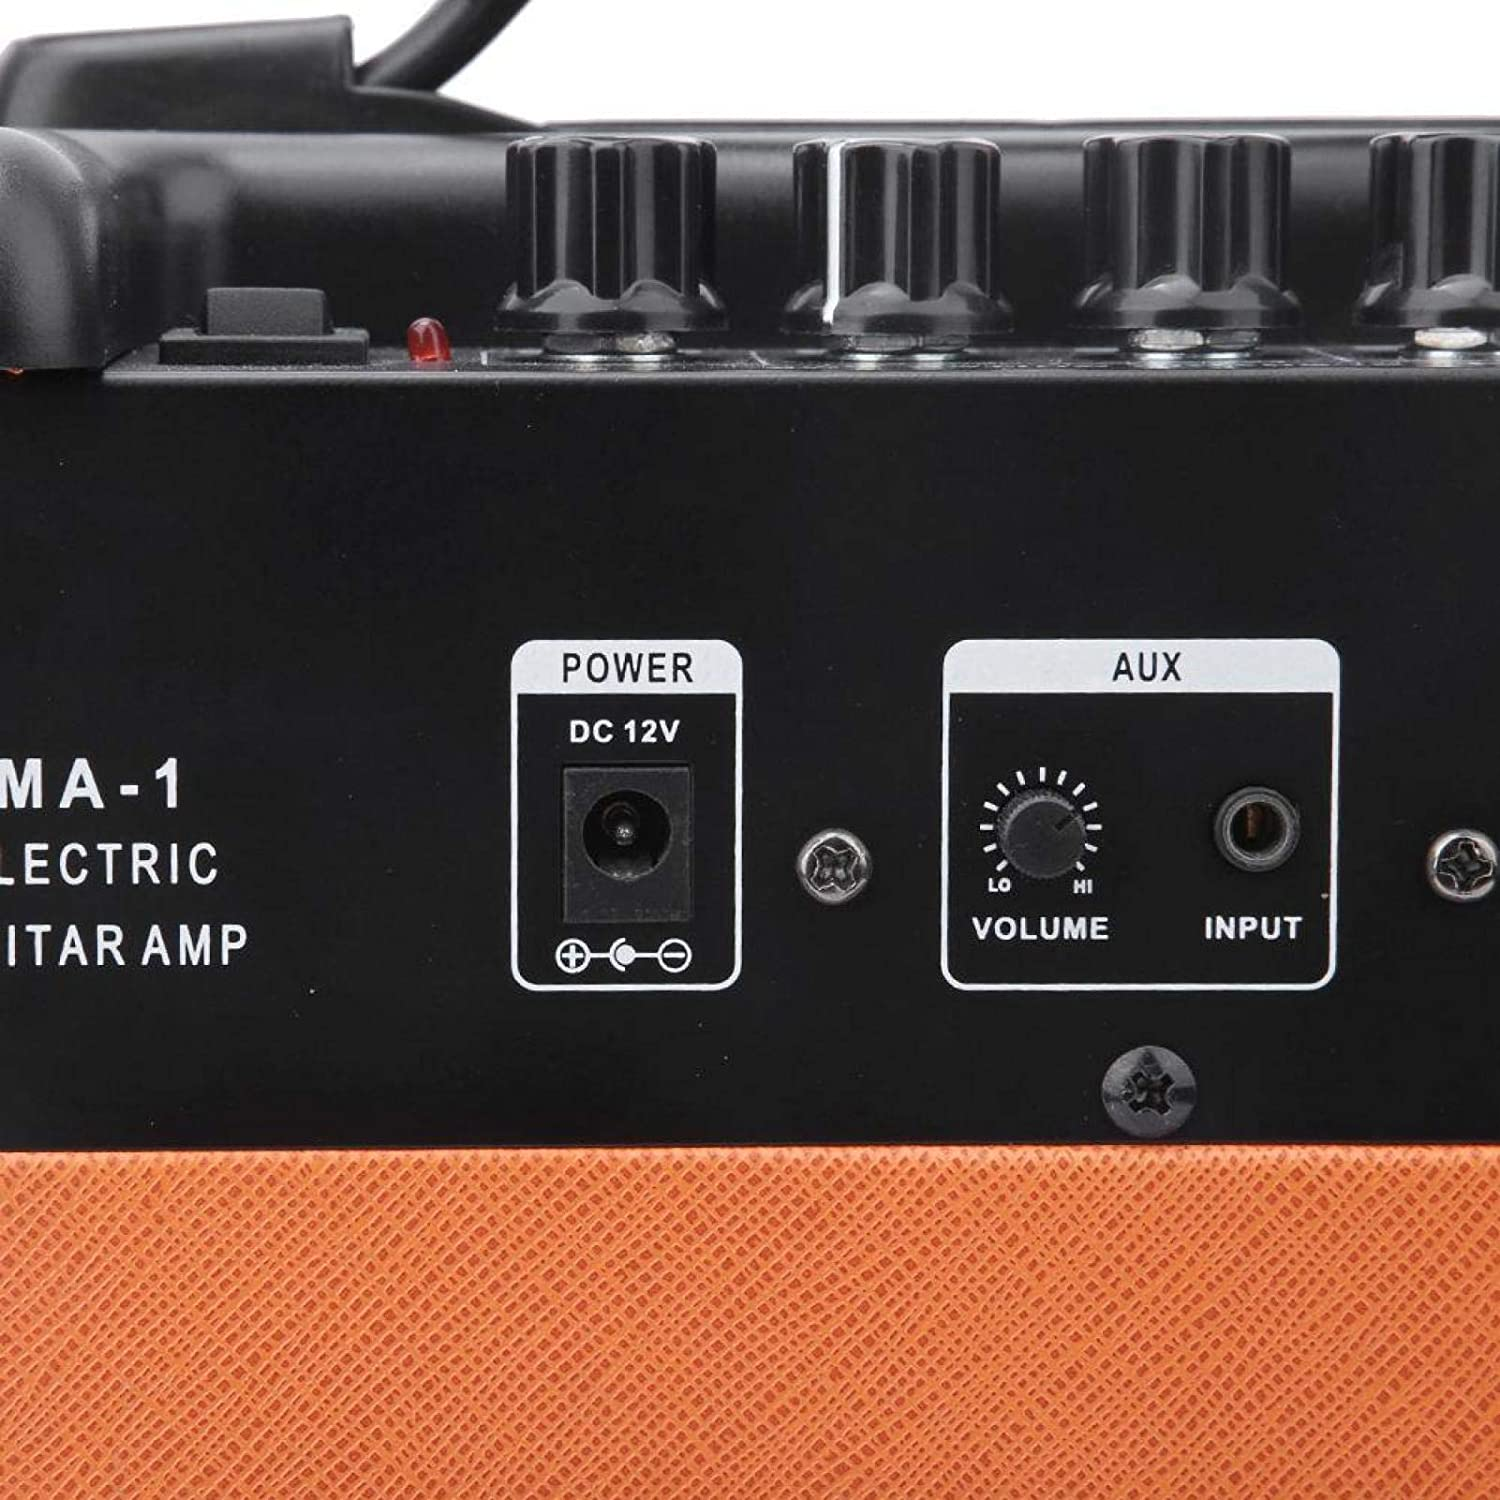 Guitar Amplifier Inexpensive Ranking TOP10 10w for Musican Lovers. Enthusiasts